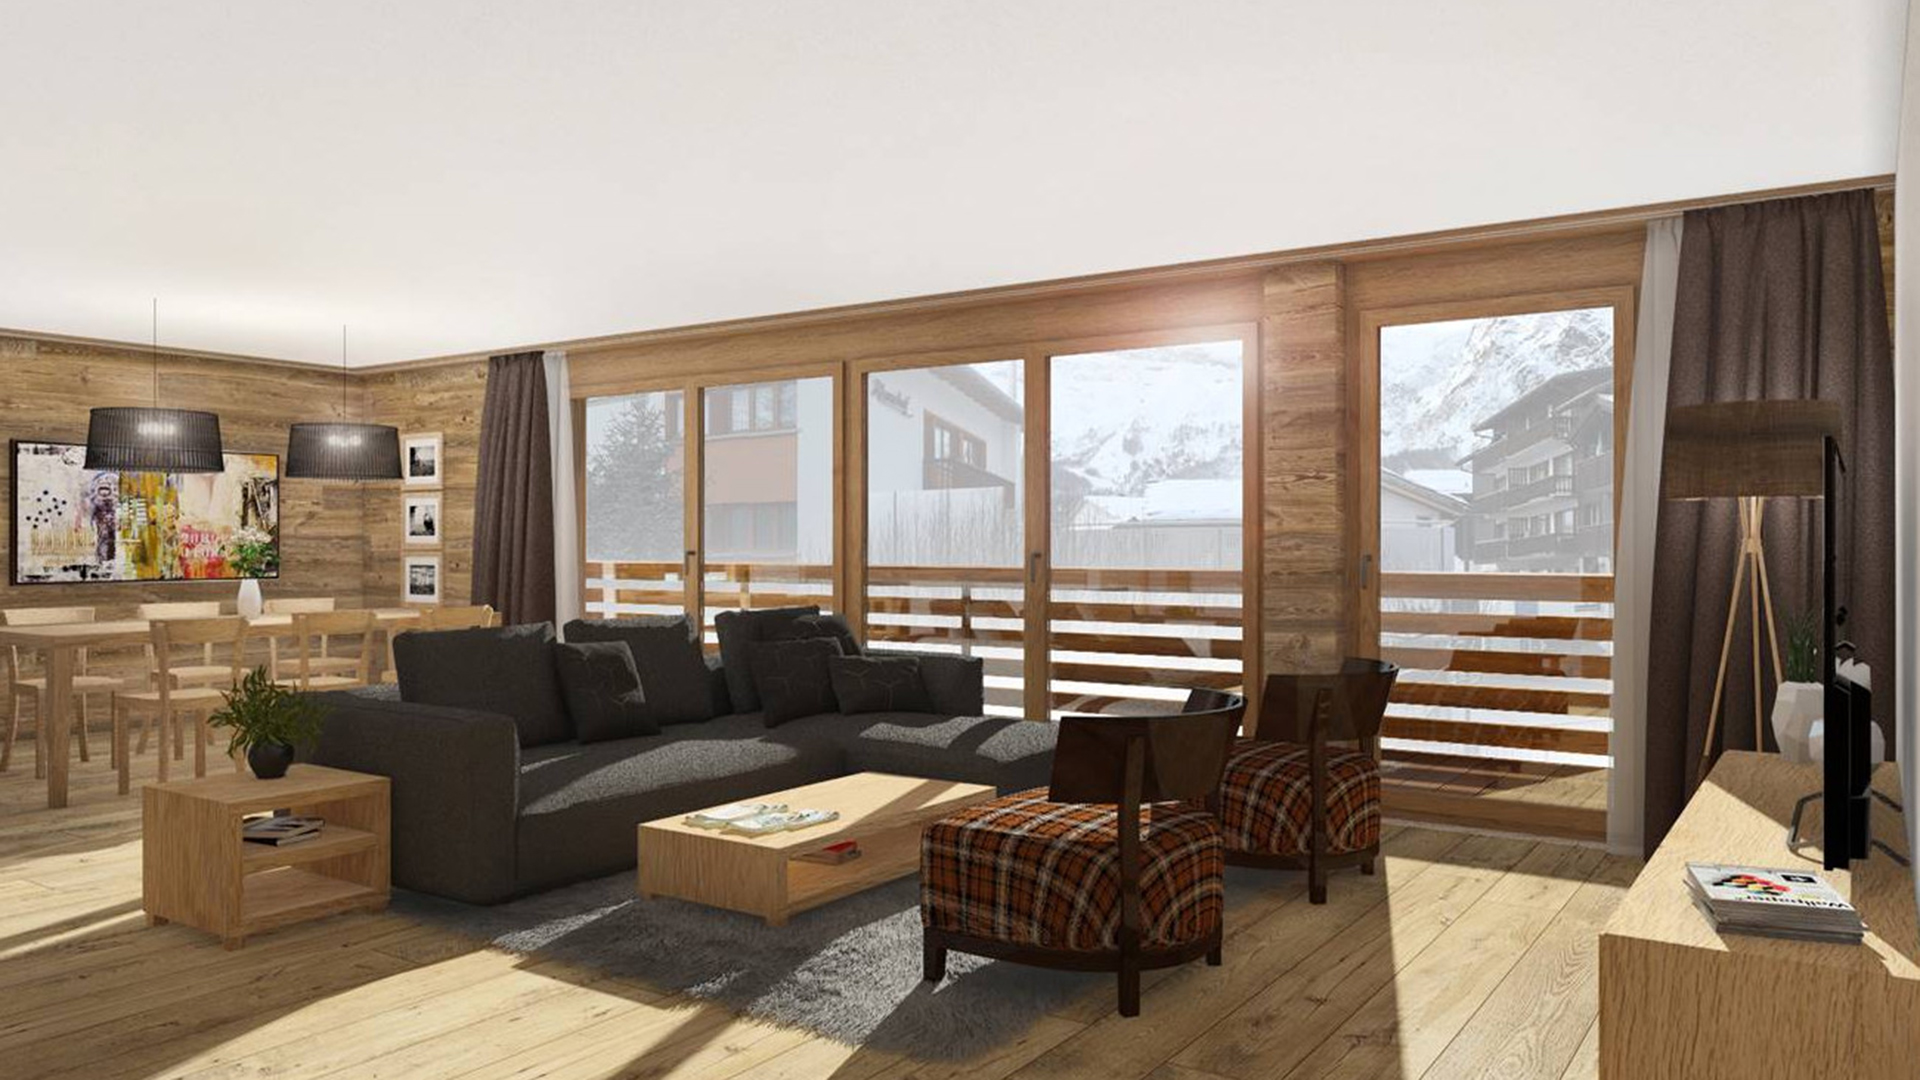 Chalet Gletschergarten Apartments, Switzerland